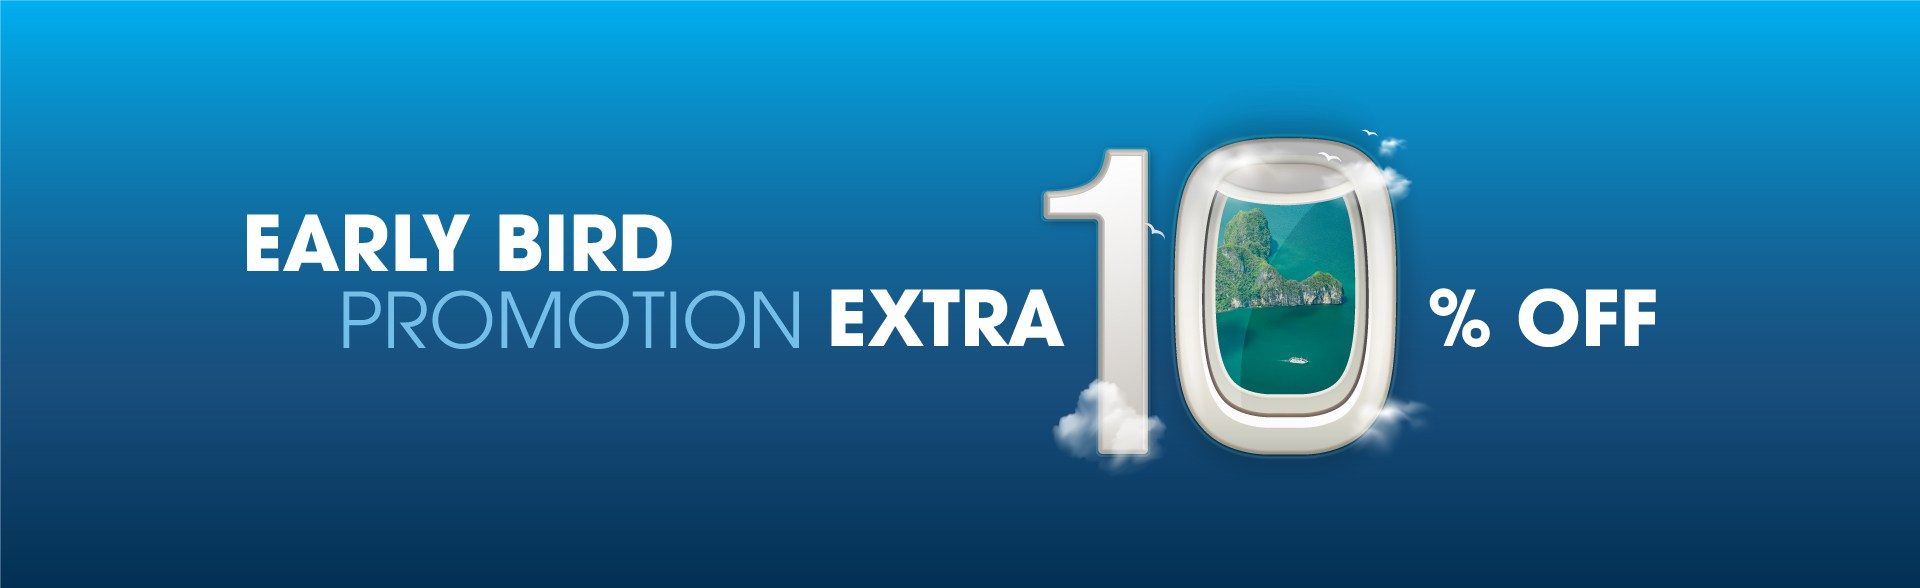 Early bird promotion - extra up to 10% off